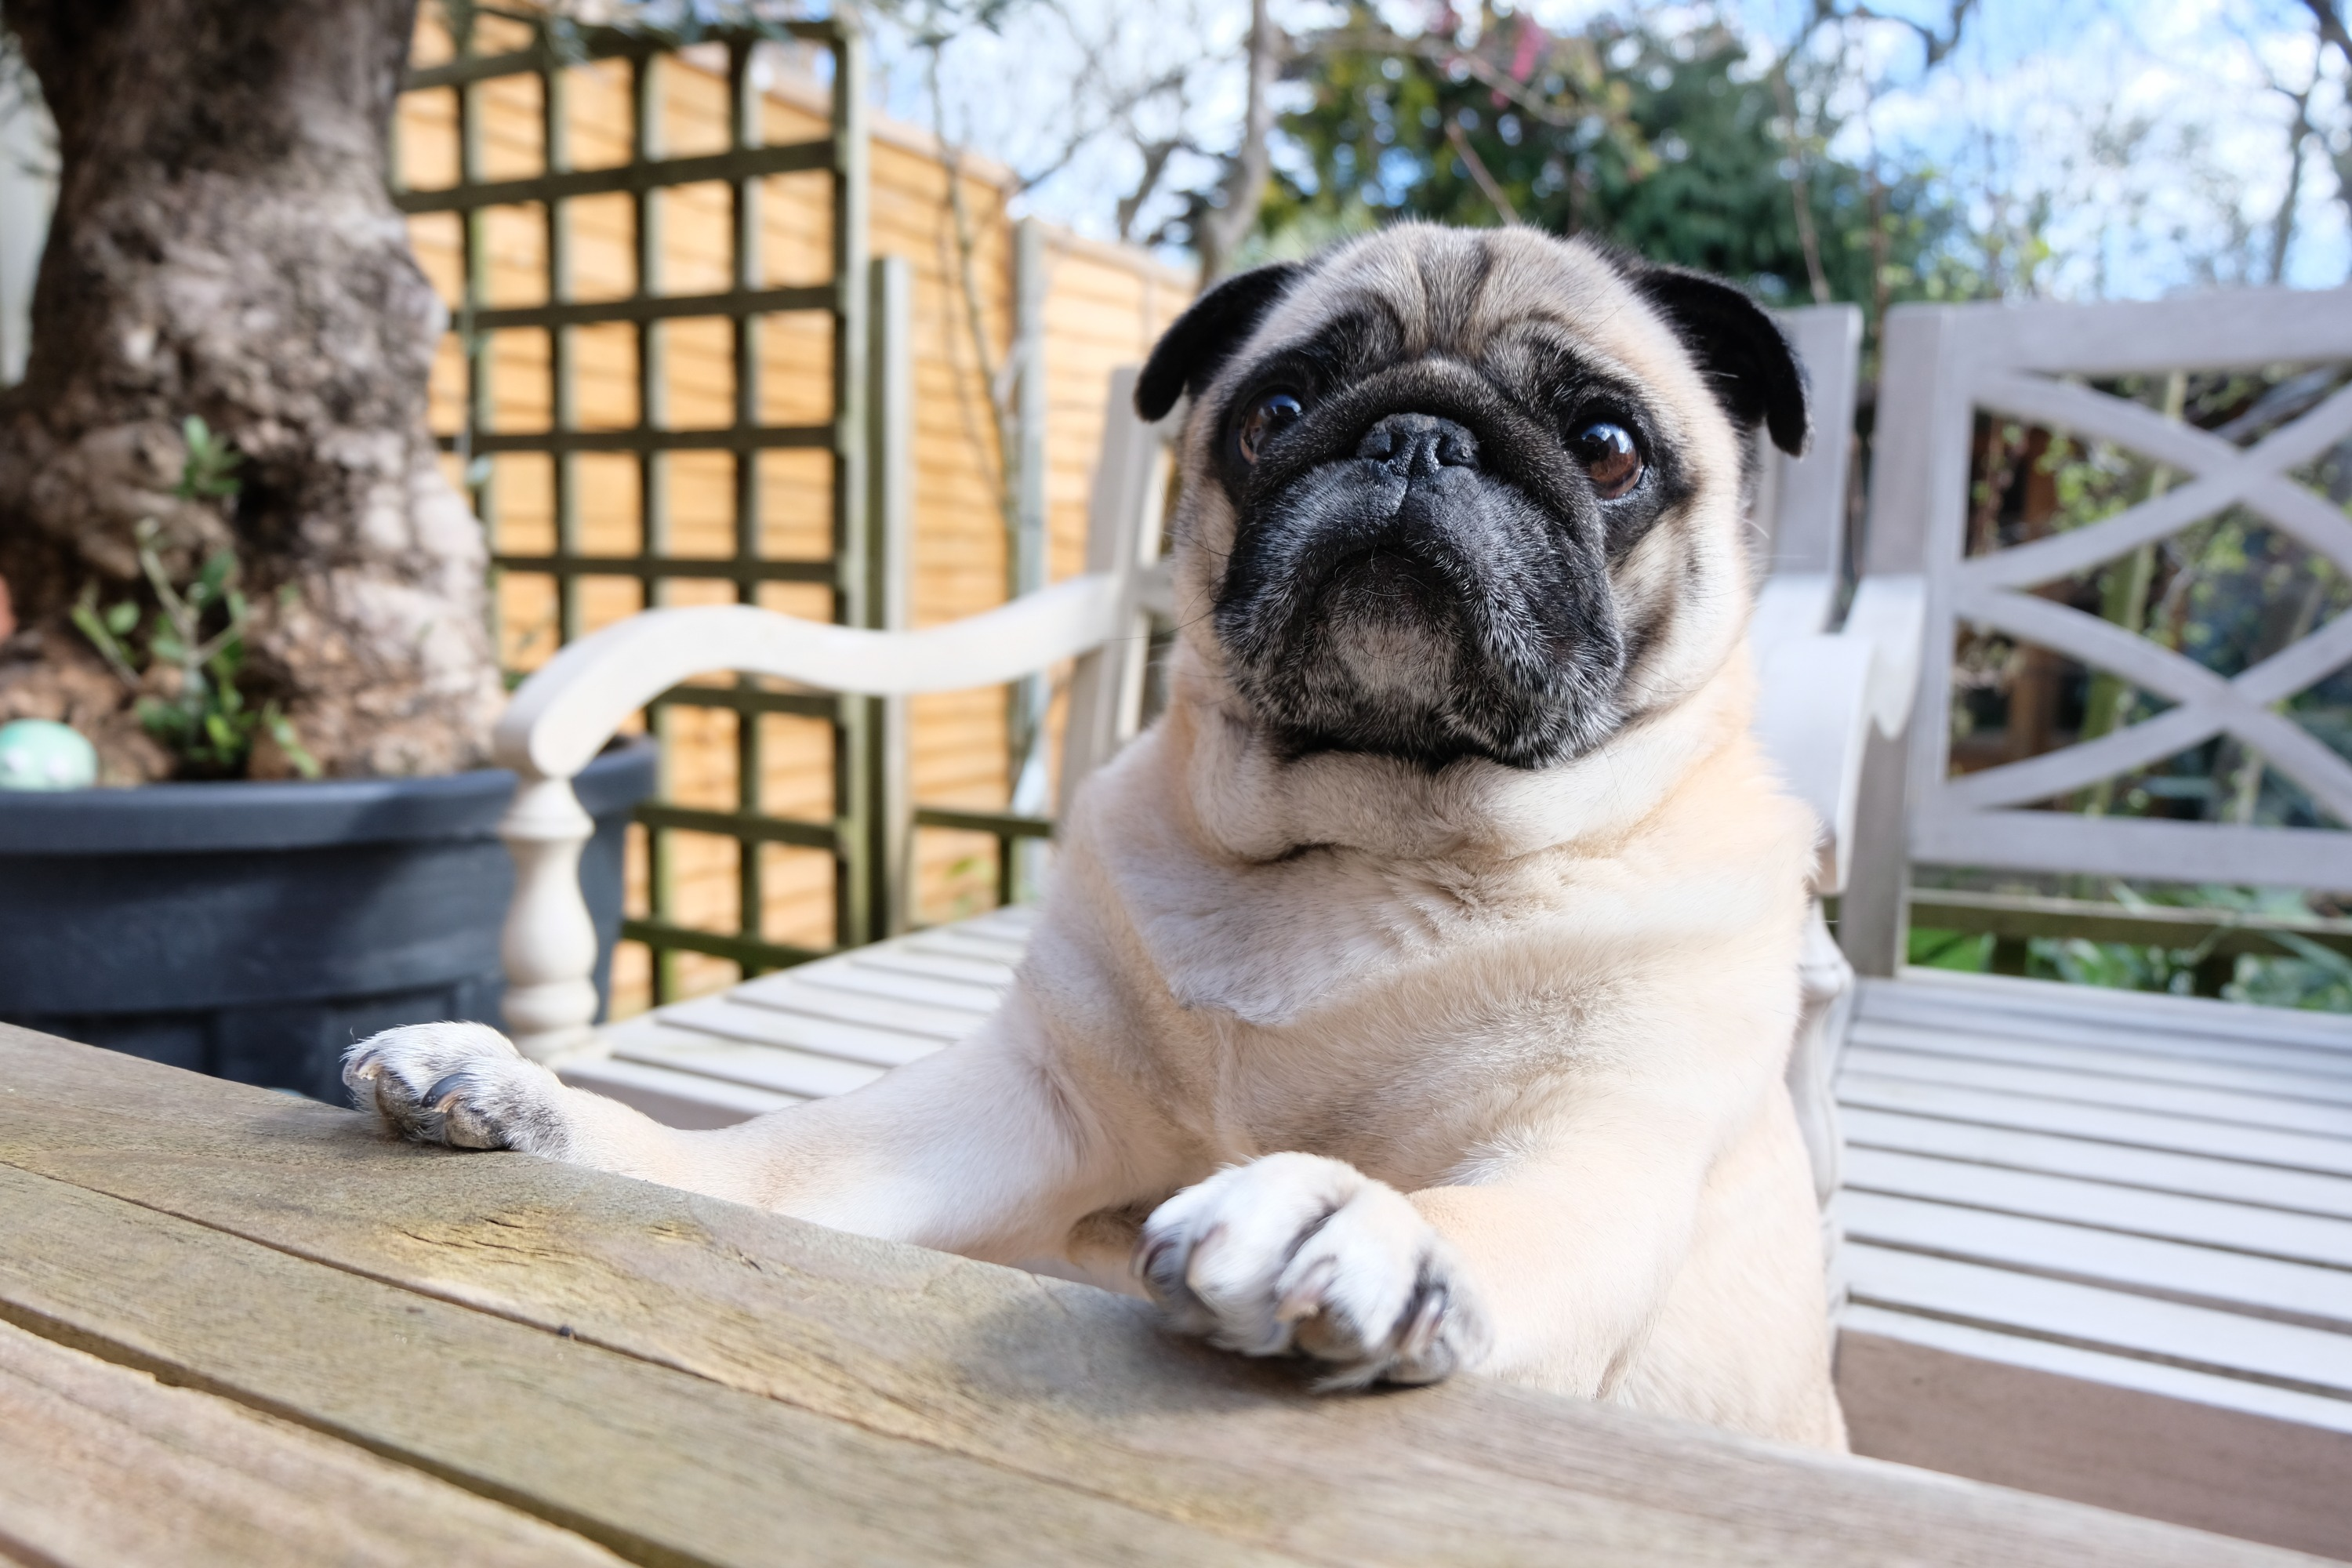 A tan pug with his paws on a wooden table on the back deck of a home.